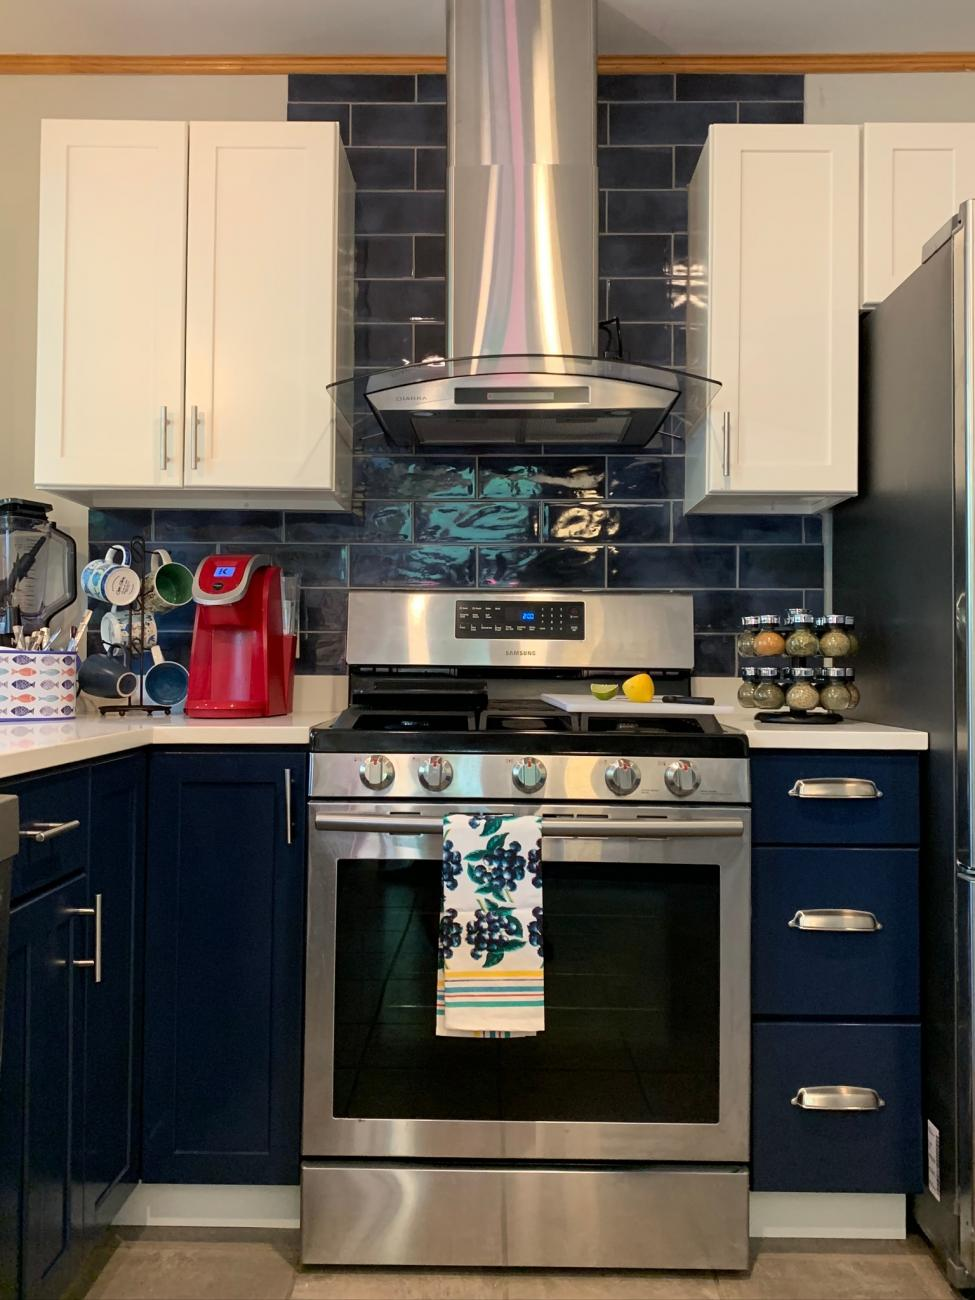 Kitchen Stove Countertop Renovate